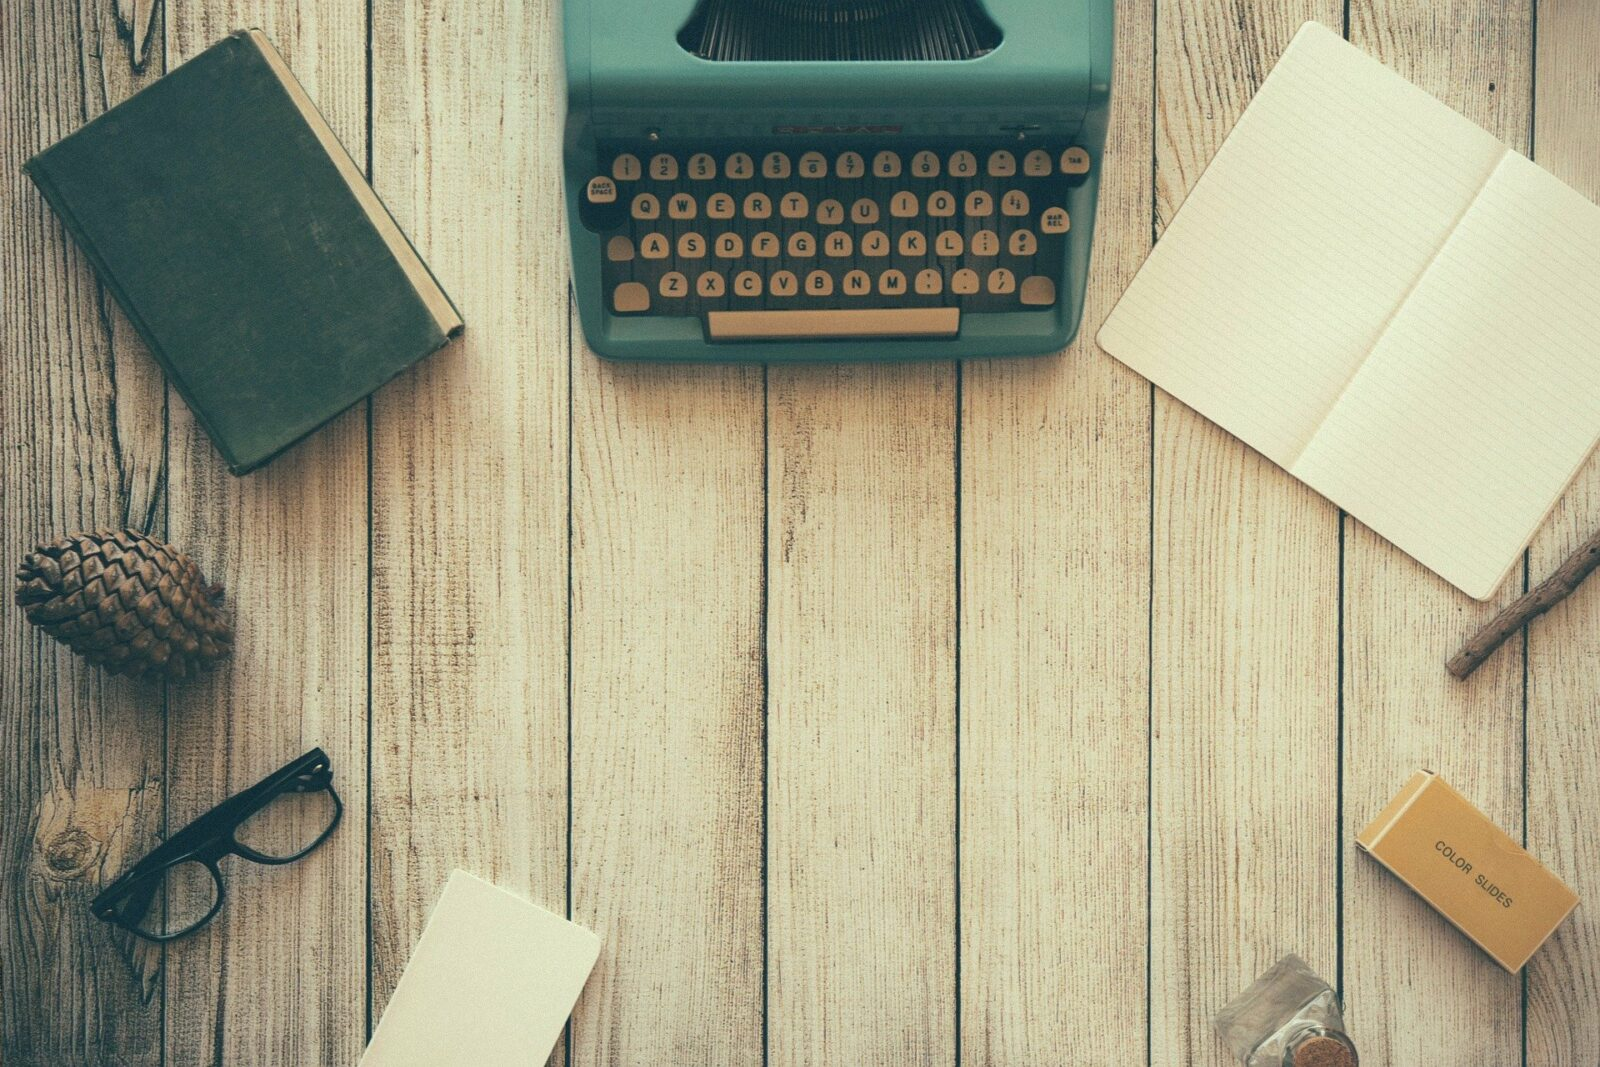 typewriter, notebook, book, and other writing supplies